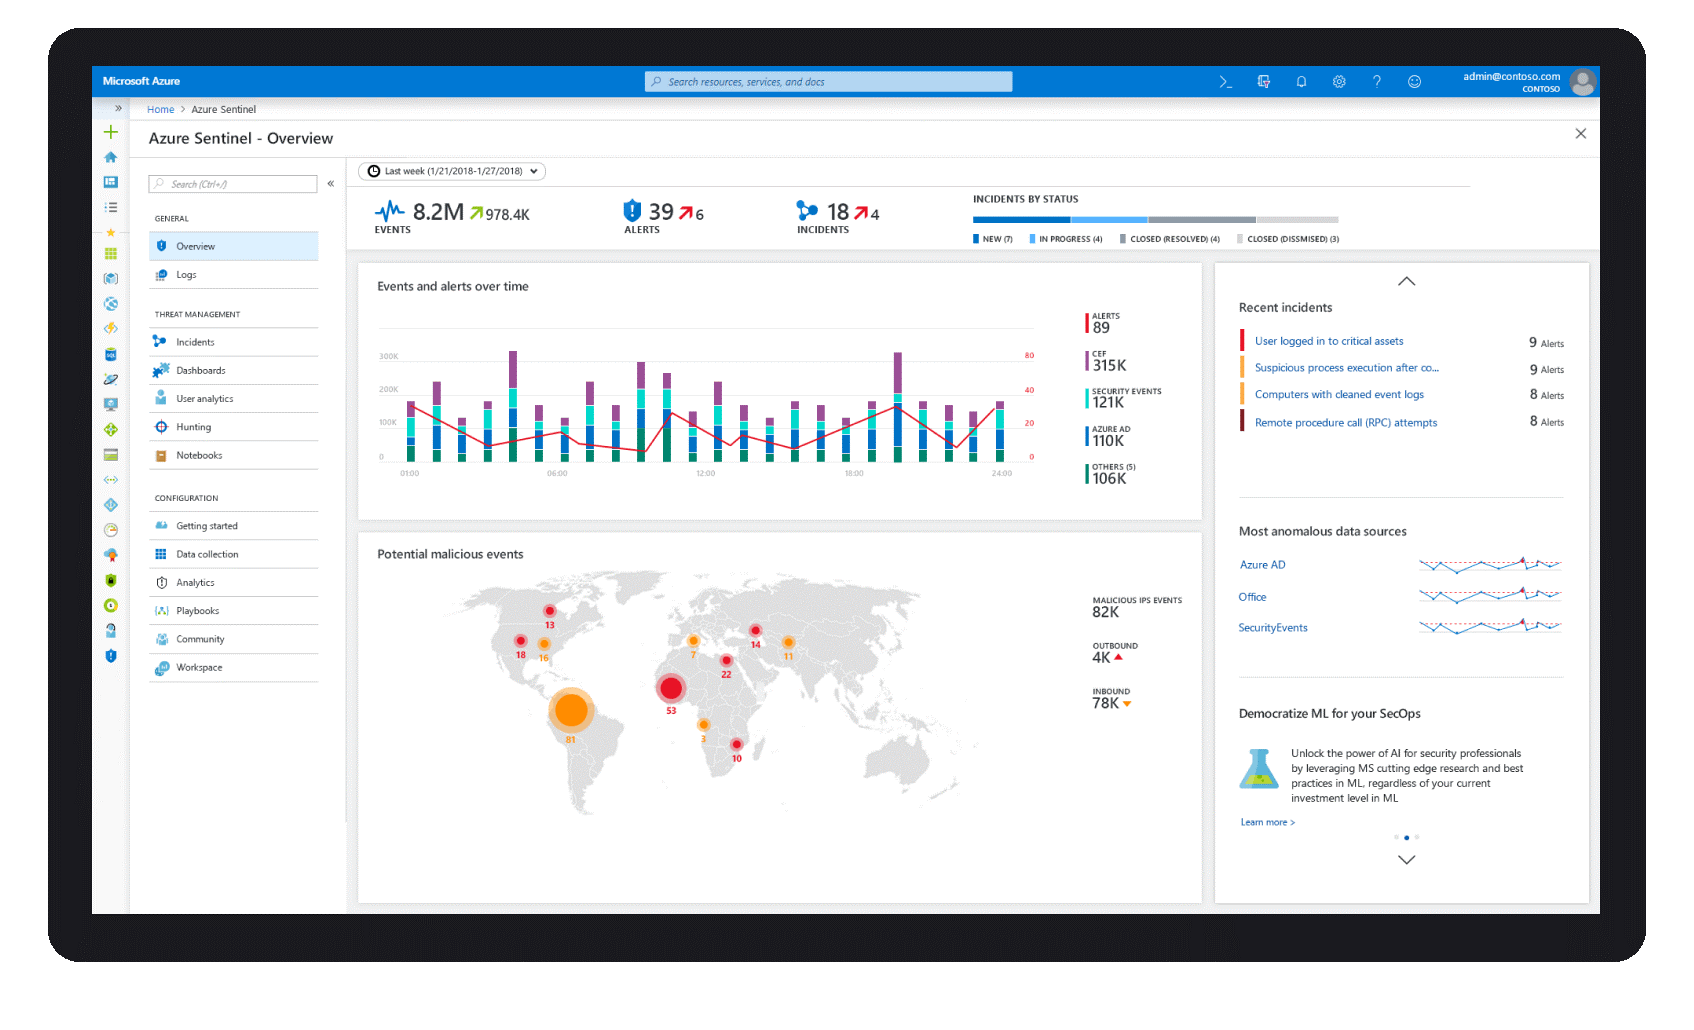 : Azure Sentinel makes it easy to collect security data across your entire hybrid organization from devices, to users, to apps, to servers on any cloud.An image showing how